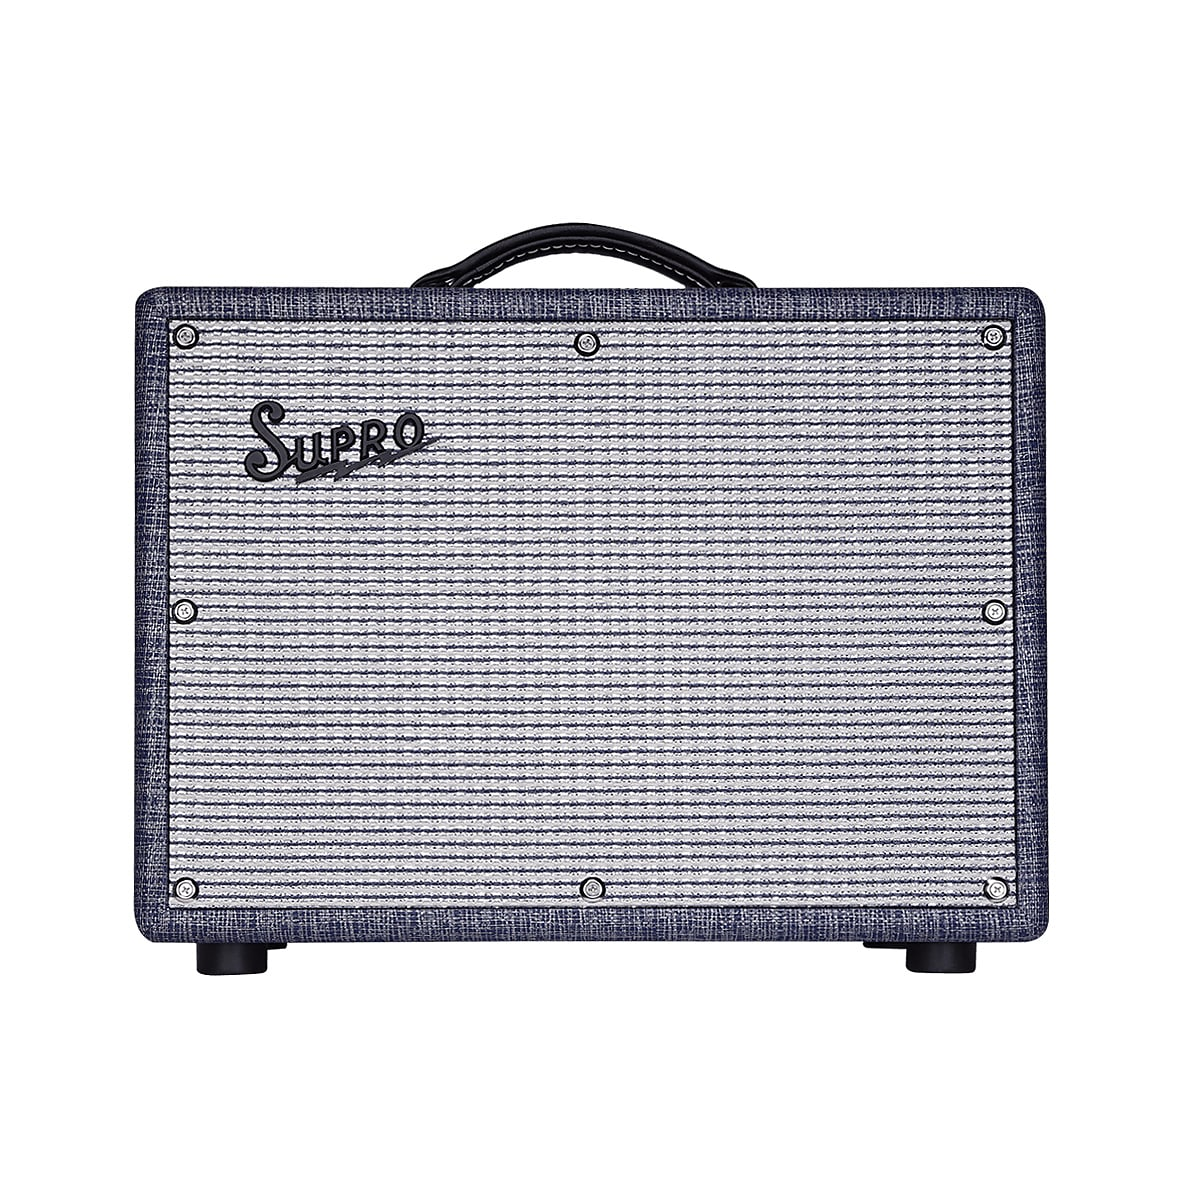 Back in Stock! Supro 1970RK Keeley Custom 25W Tube Guitar Combo Amplifier, New, Free Shipping